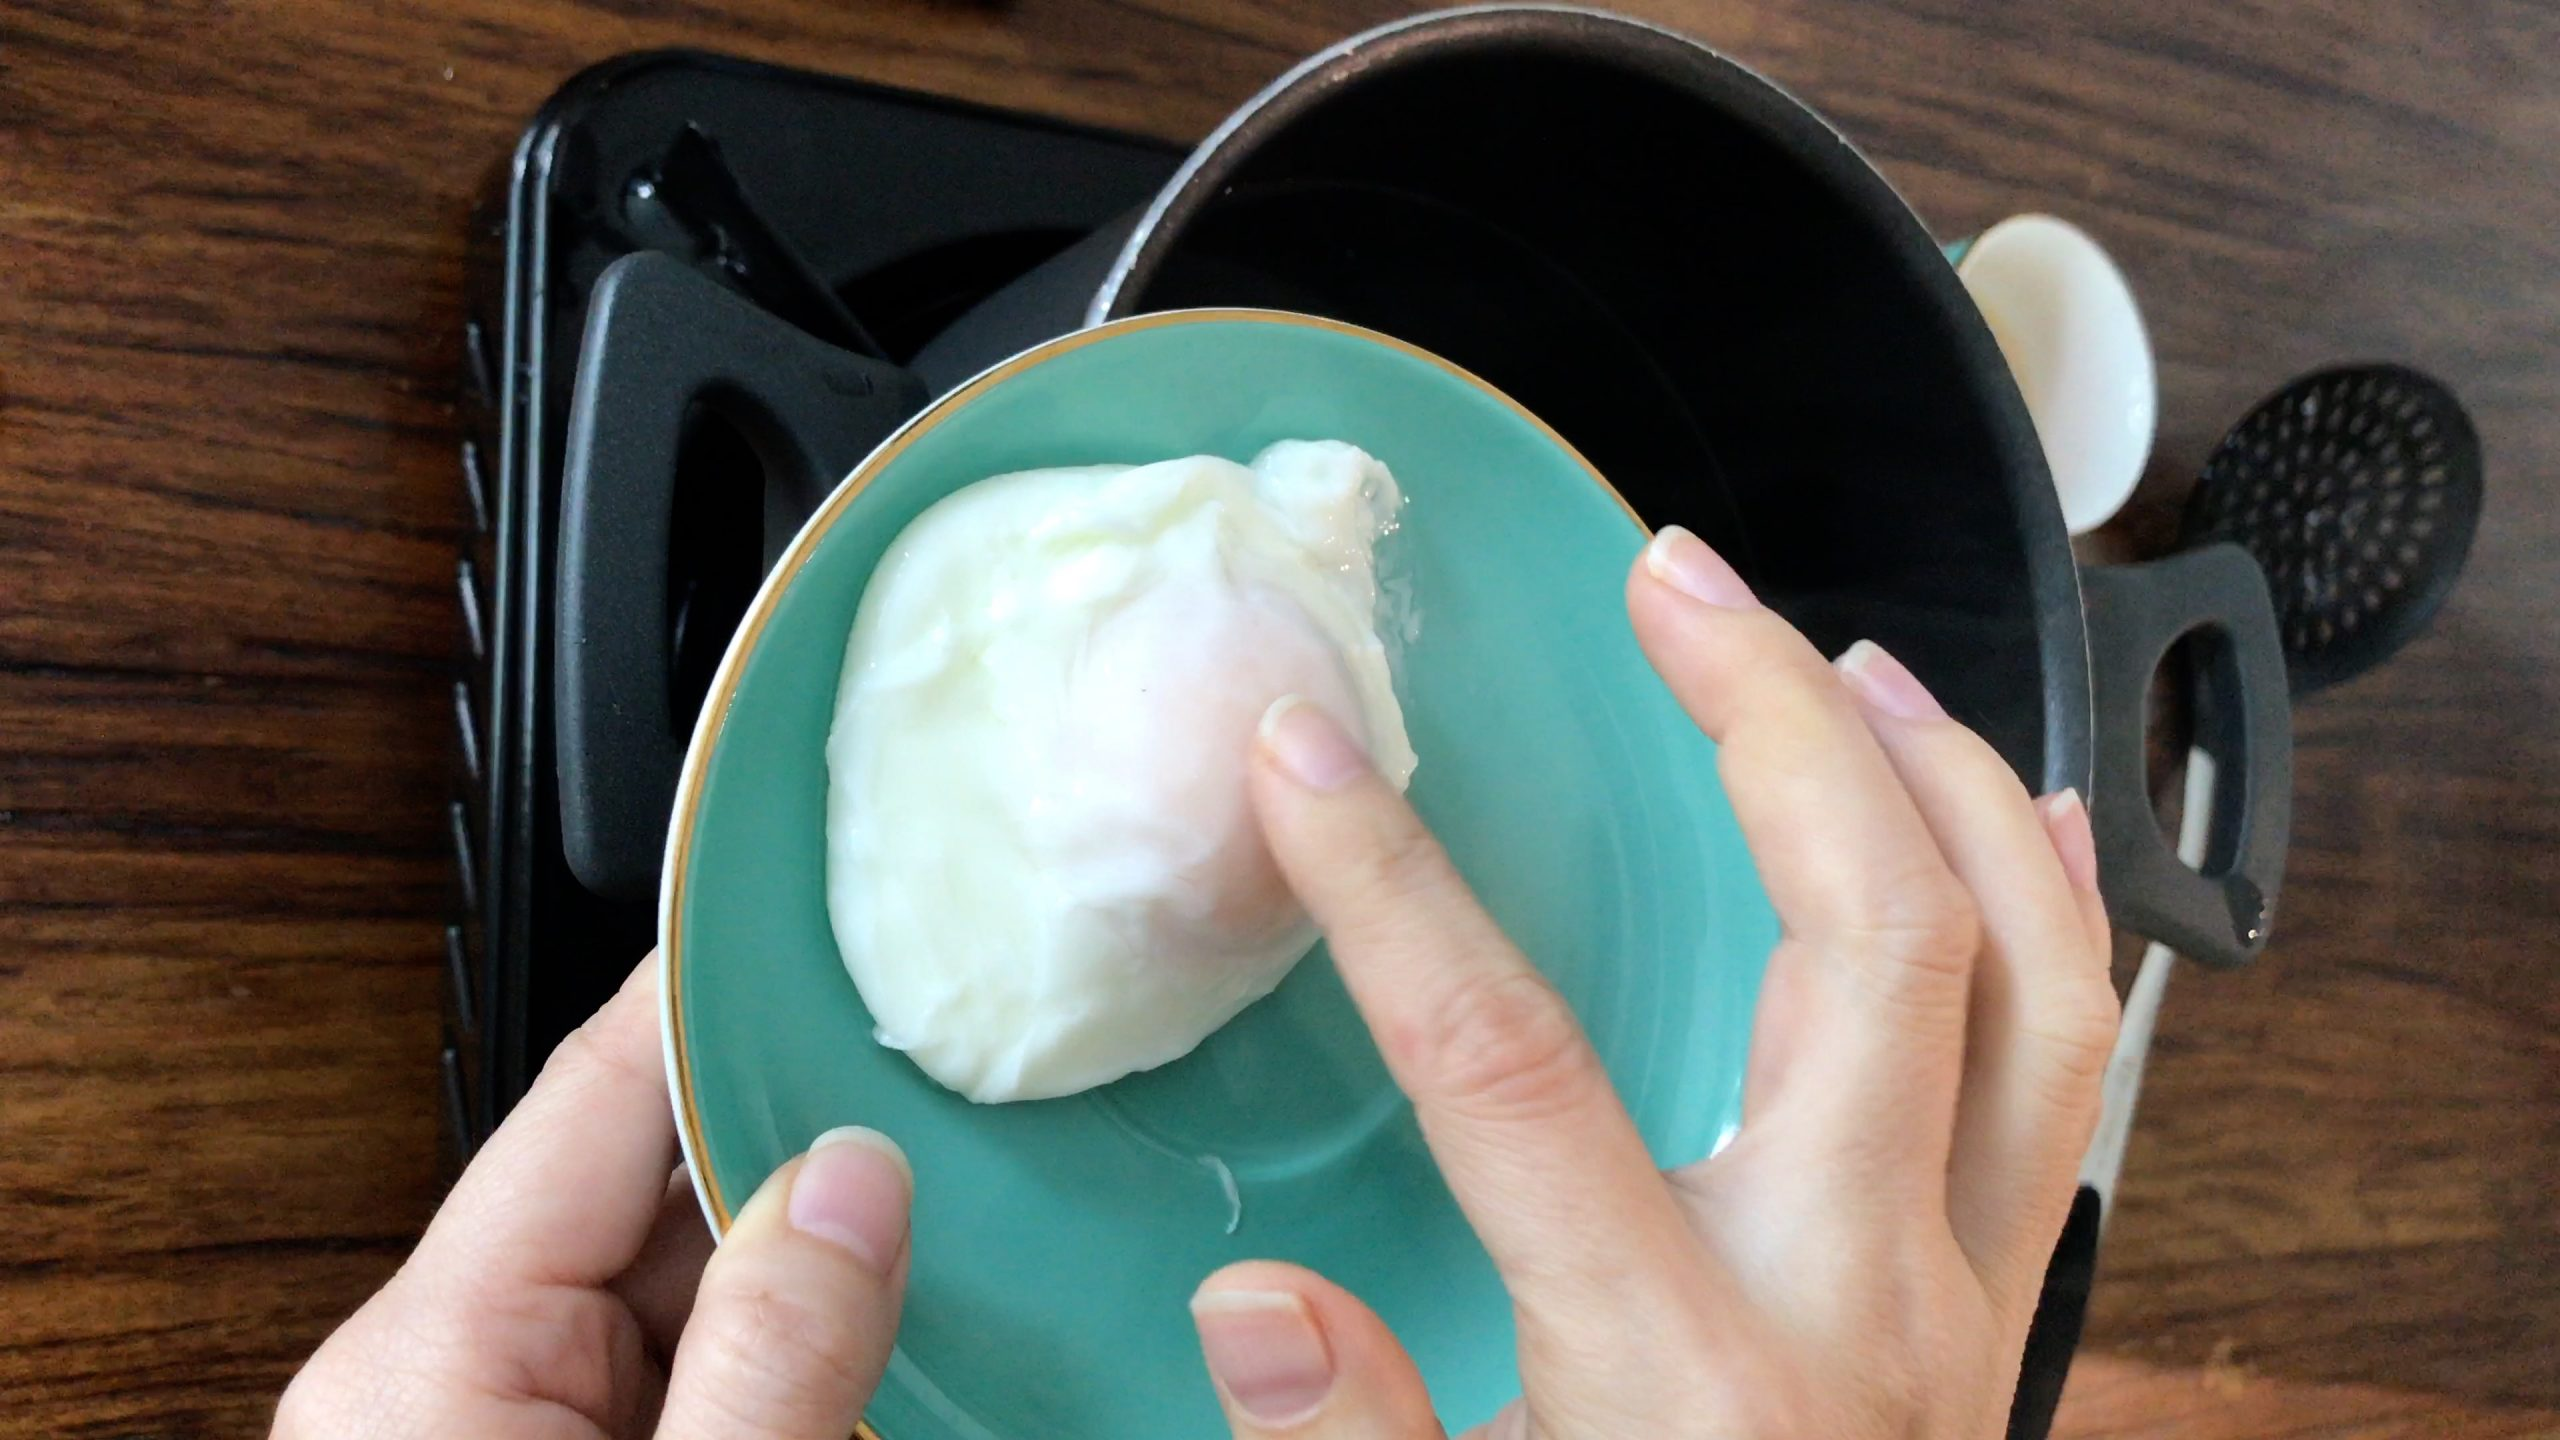 Use a finger poking the poached egg